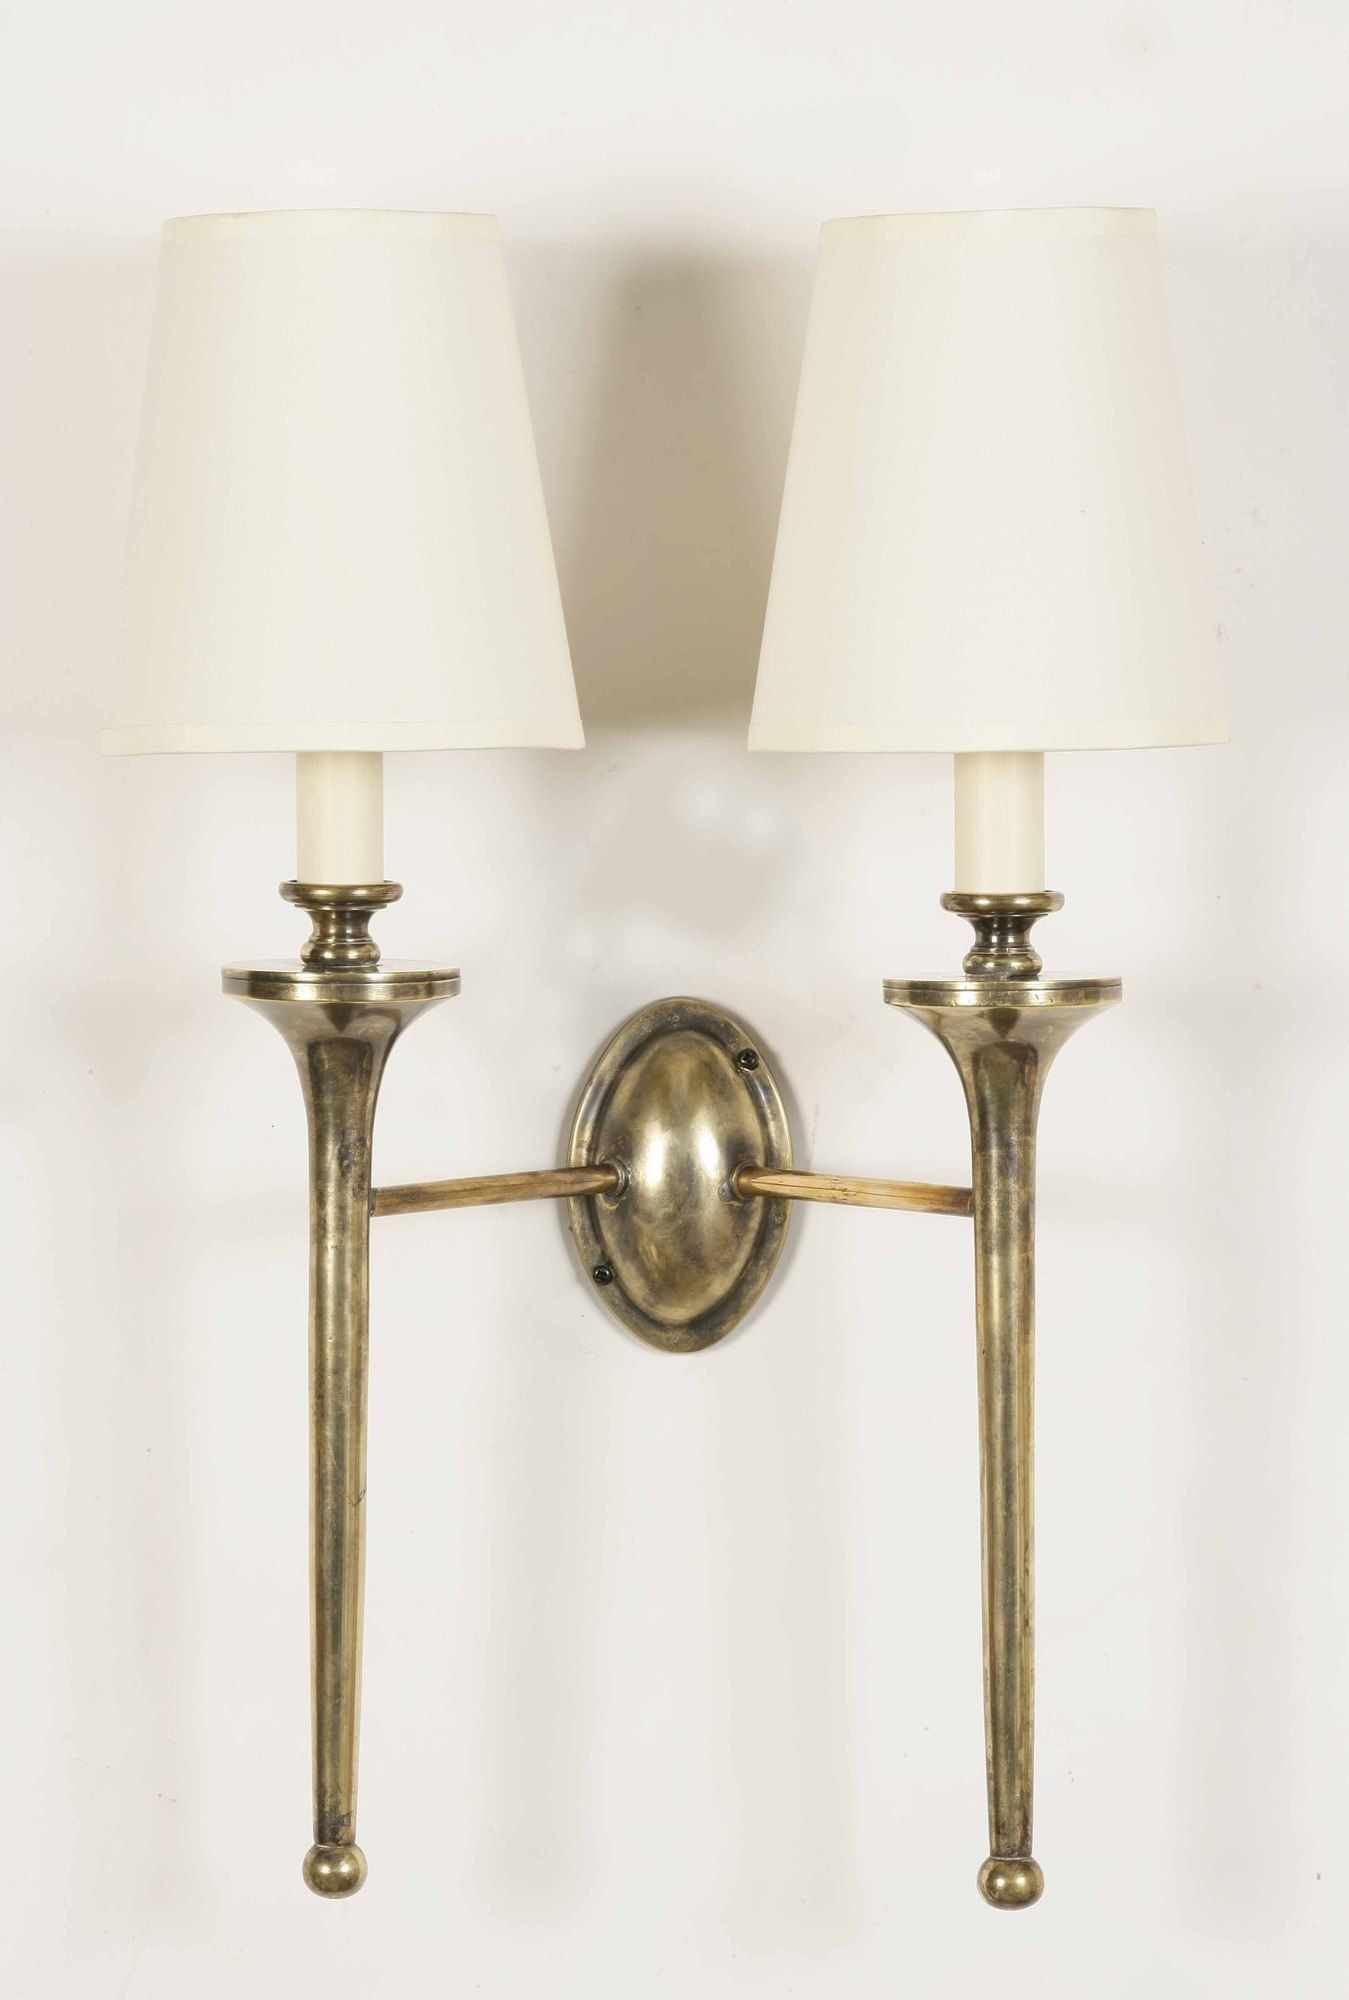 Twin grosvenor wall light lights pinterest twins walls and lights a traditional hand made solid brass single wall light complete with an opal glass storm shade aloadofball Image collections